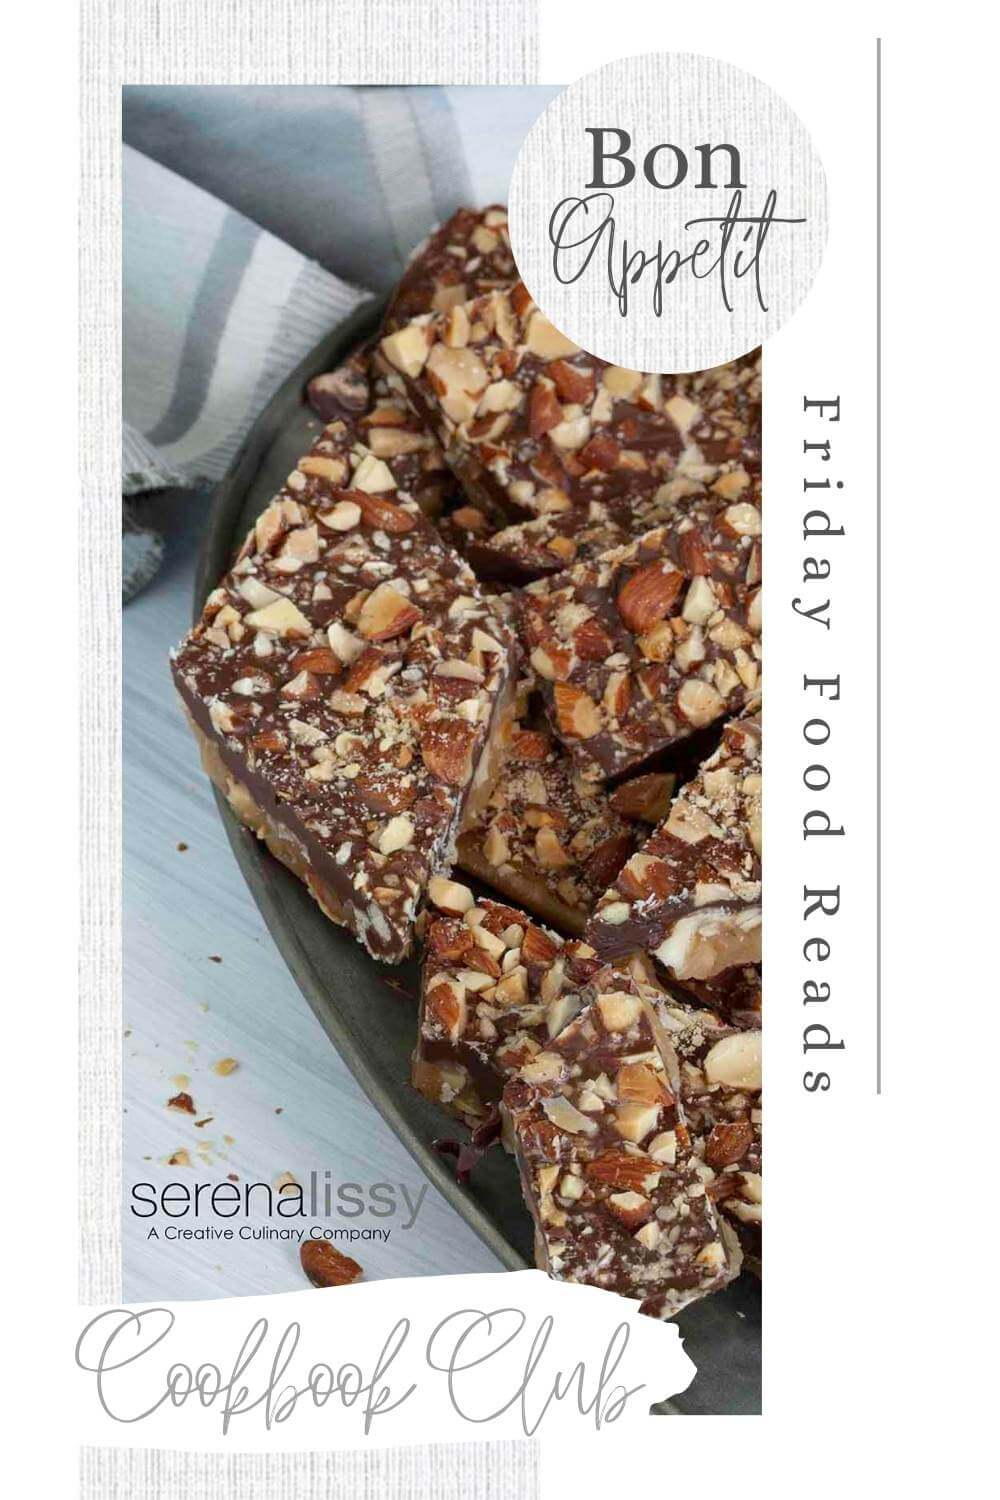 Now For Something Sweet Cookbook Review